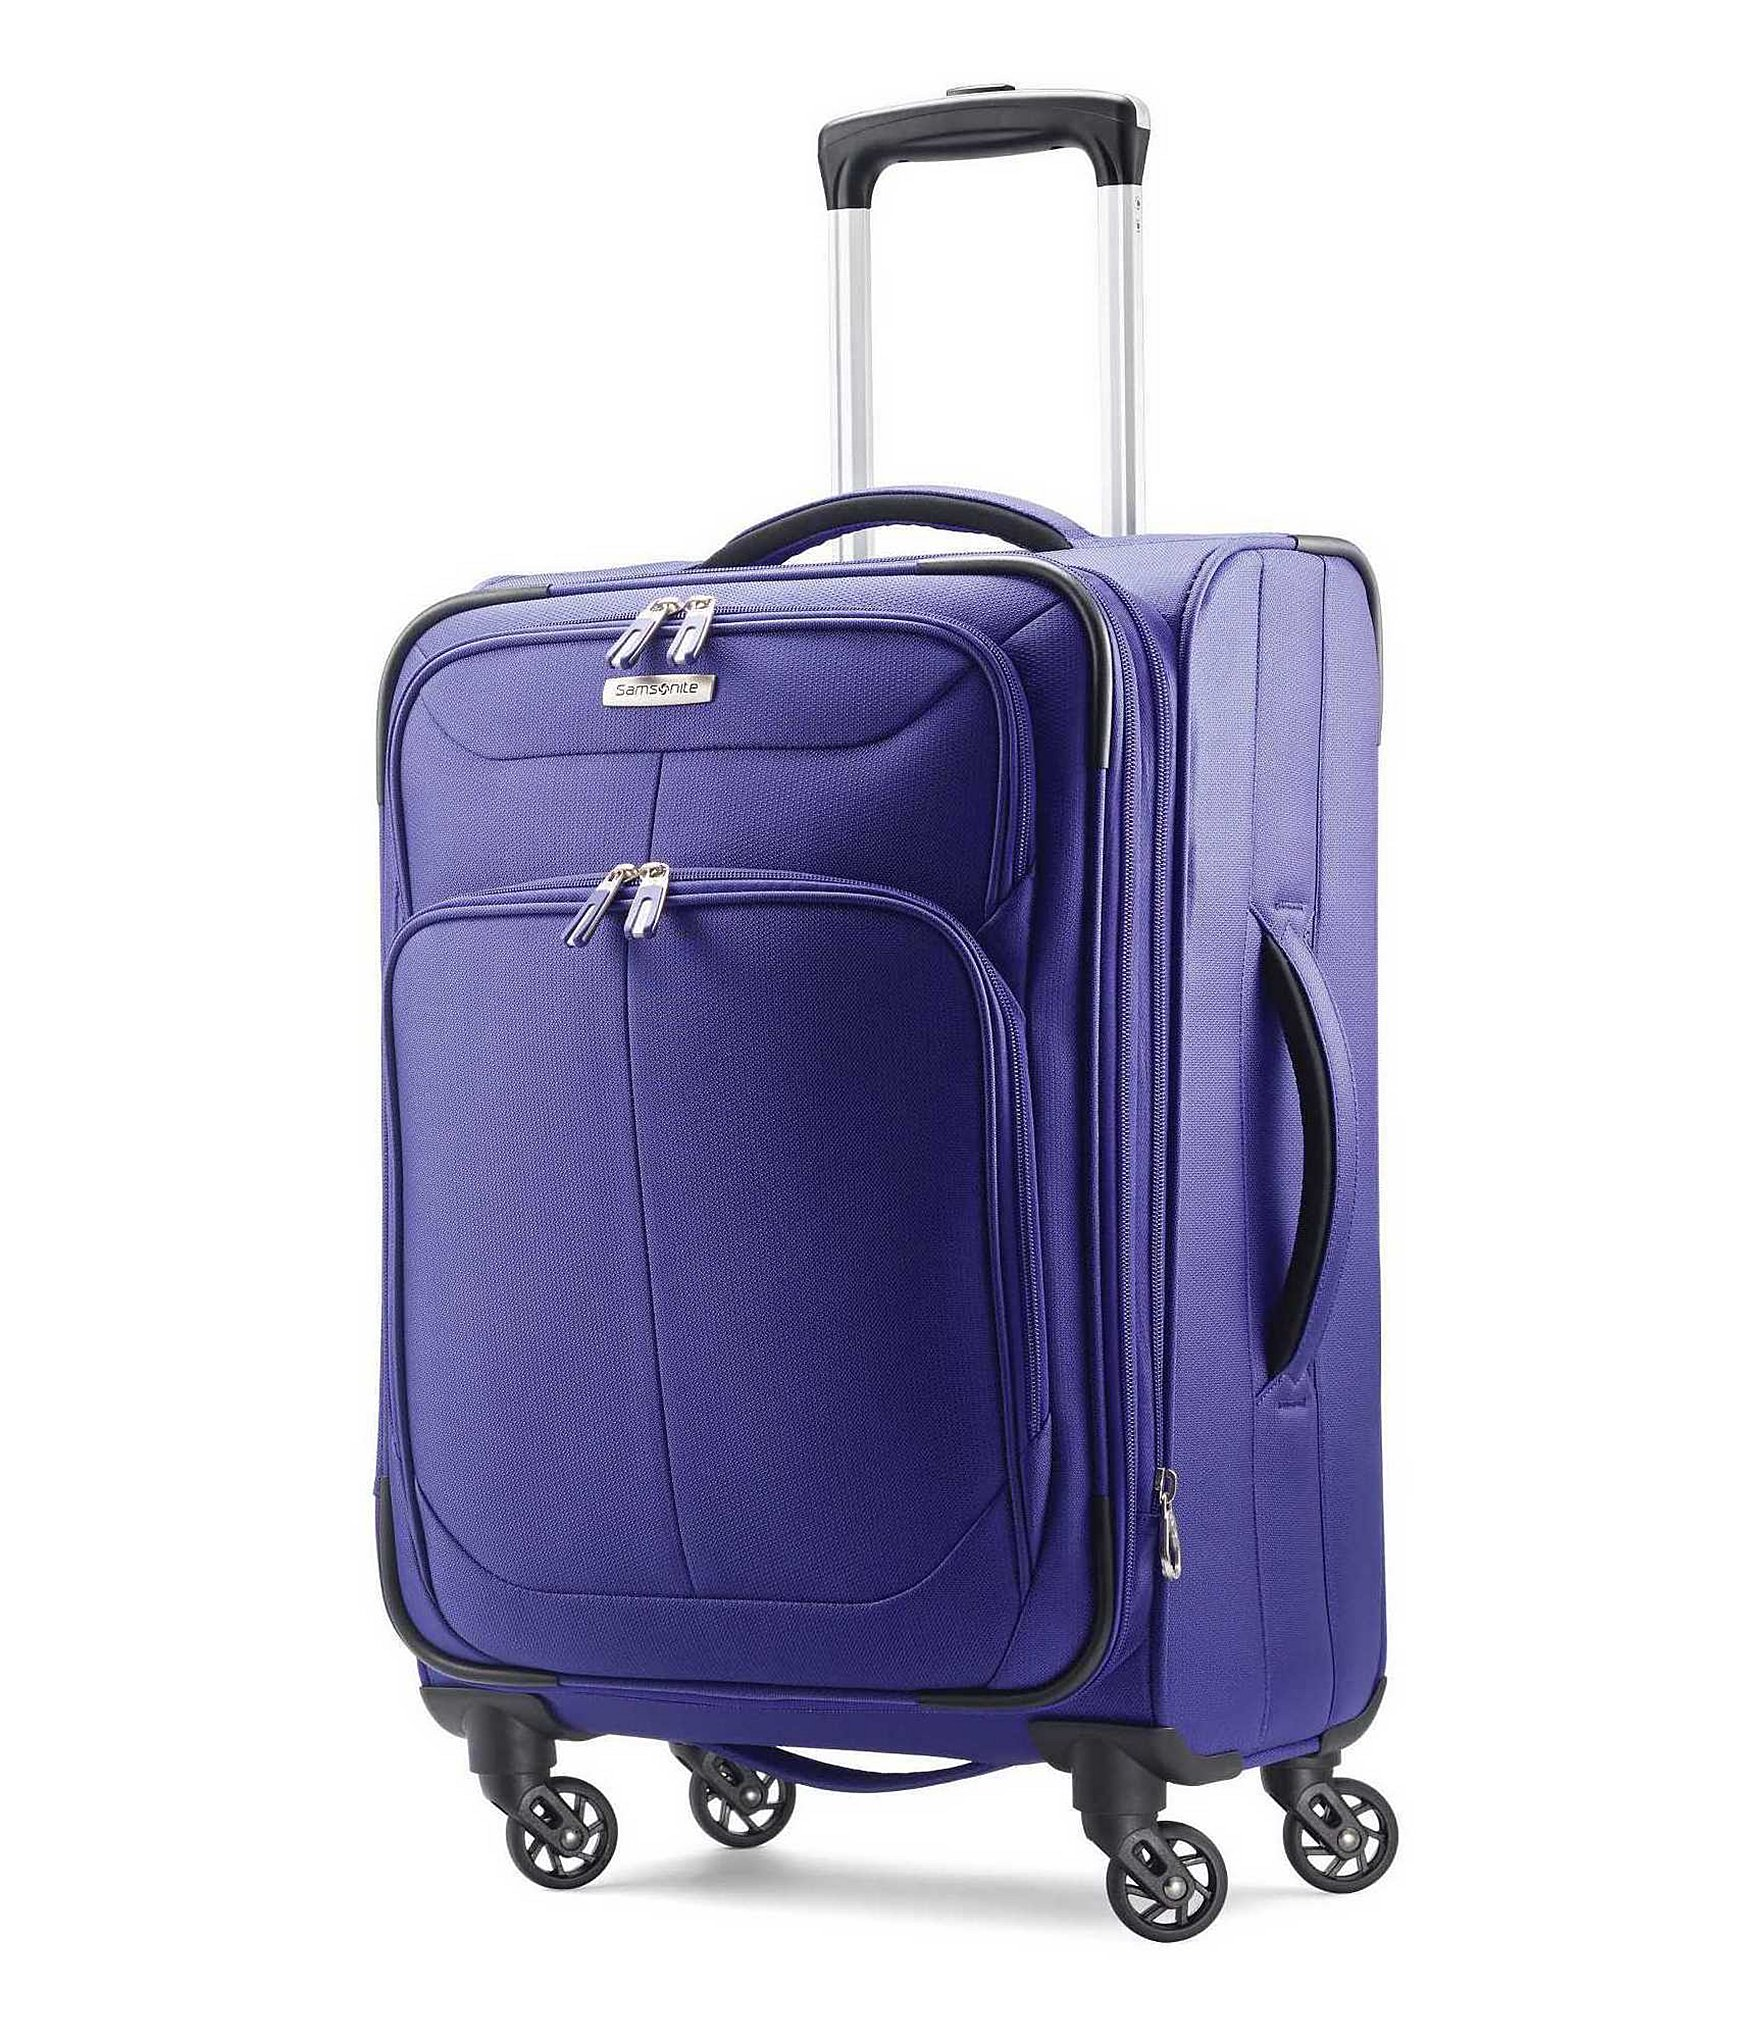 Samsonite Quickspin Expandable Domestic Carry On Spinner Dillards